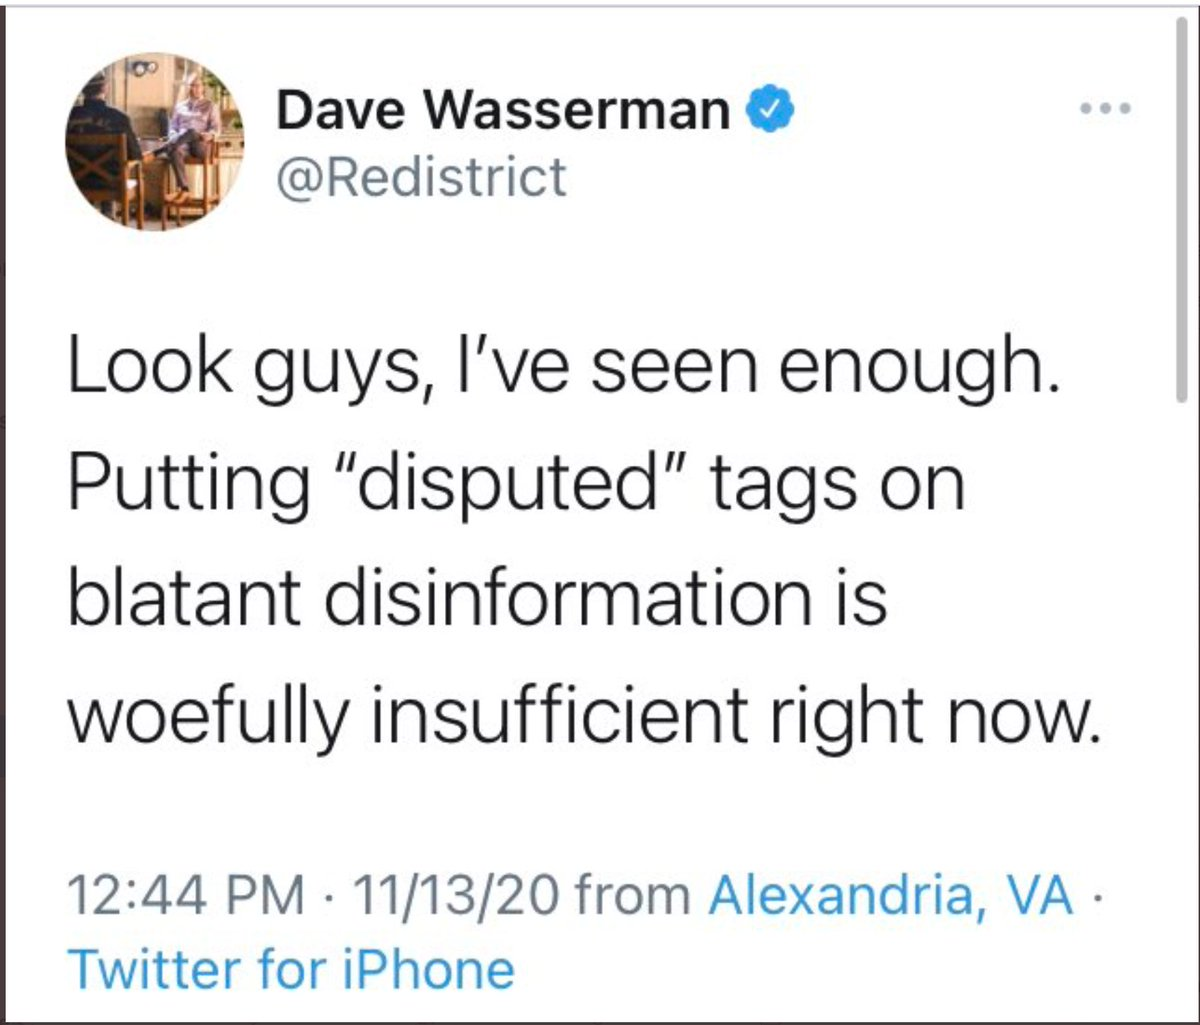 "@waltshaub Putting ""disputed"" tags on Trump's false Tweets is insufficient and dangerous. Twitter executives: Please revise @policy.  CC: @Delbius @moniqueMeche @yoyoel @jack"